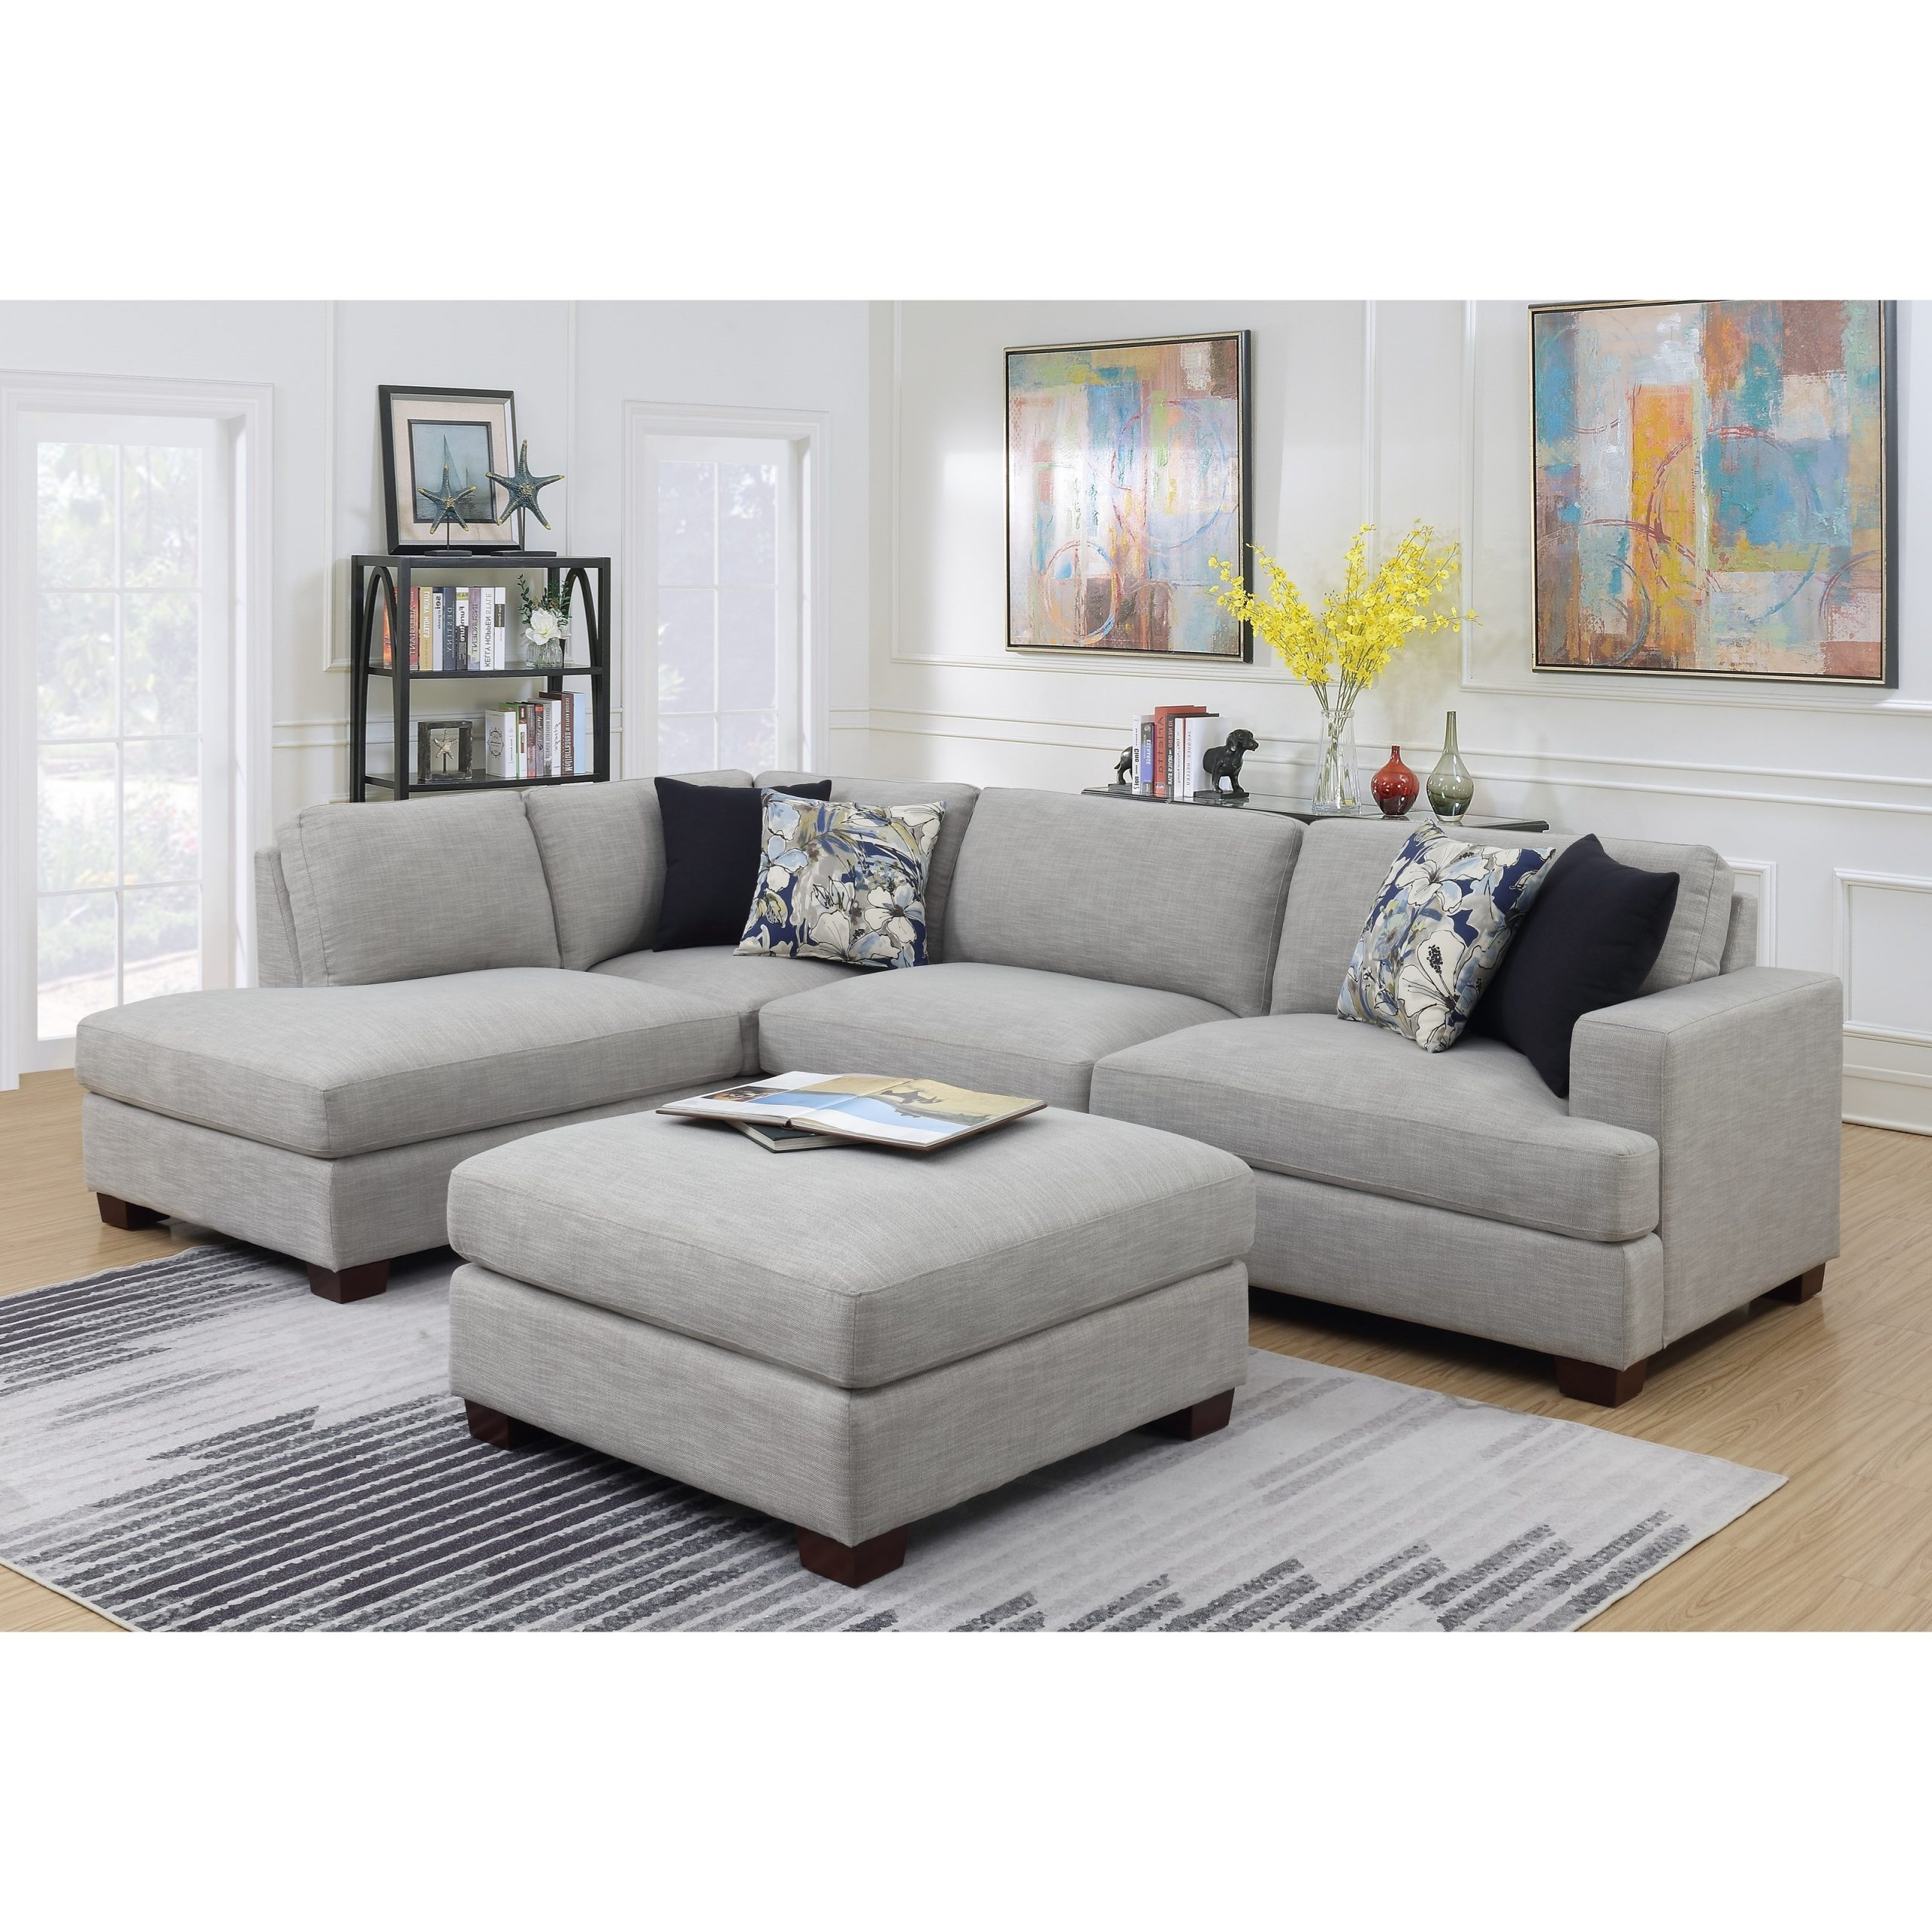 Recent Emerald Vernon Contemporary 2 Piece Sectional Sofa With Regarding 2Pc Burland Contemporary Chaise Sectional Sofas (View 1 of 25)